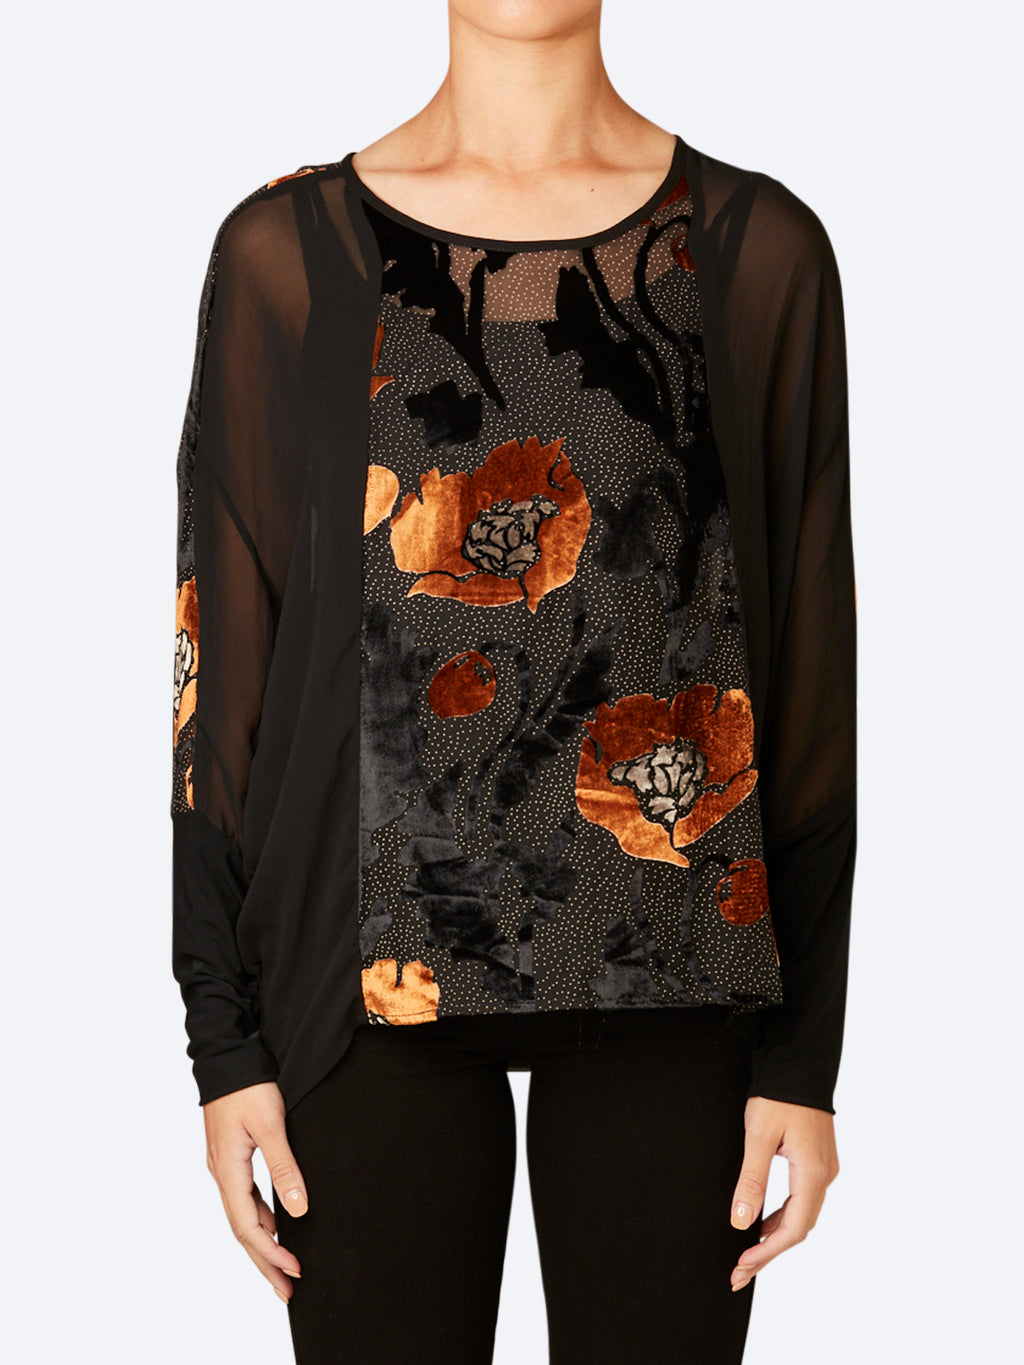 VERGE LUSTRE VELVET TOP